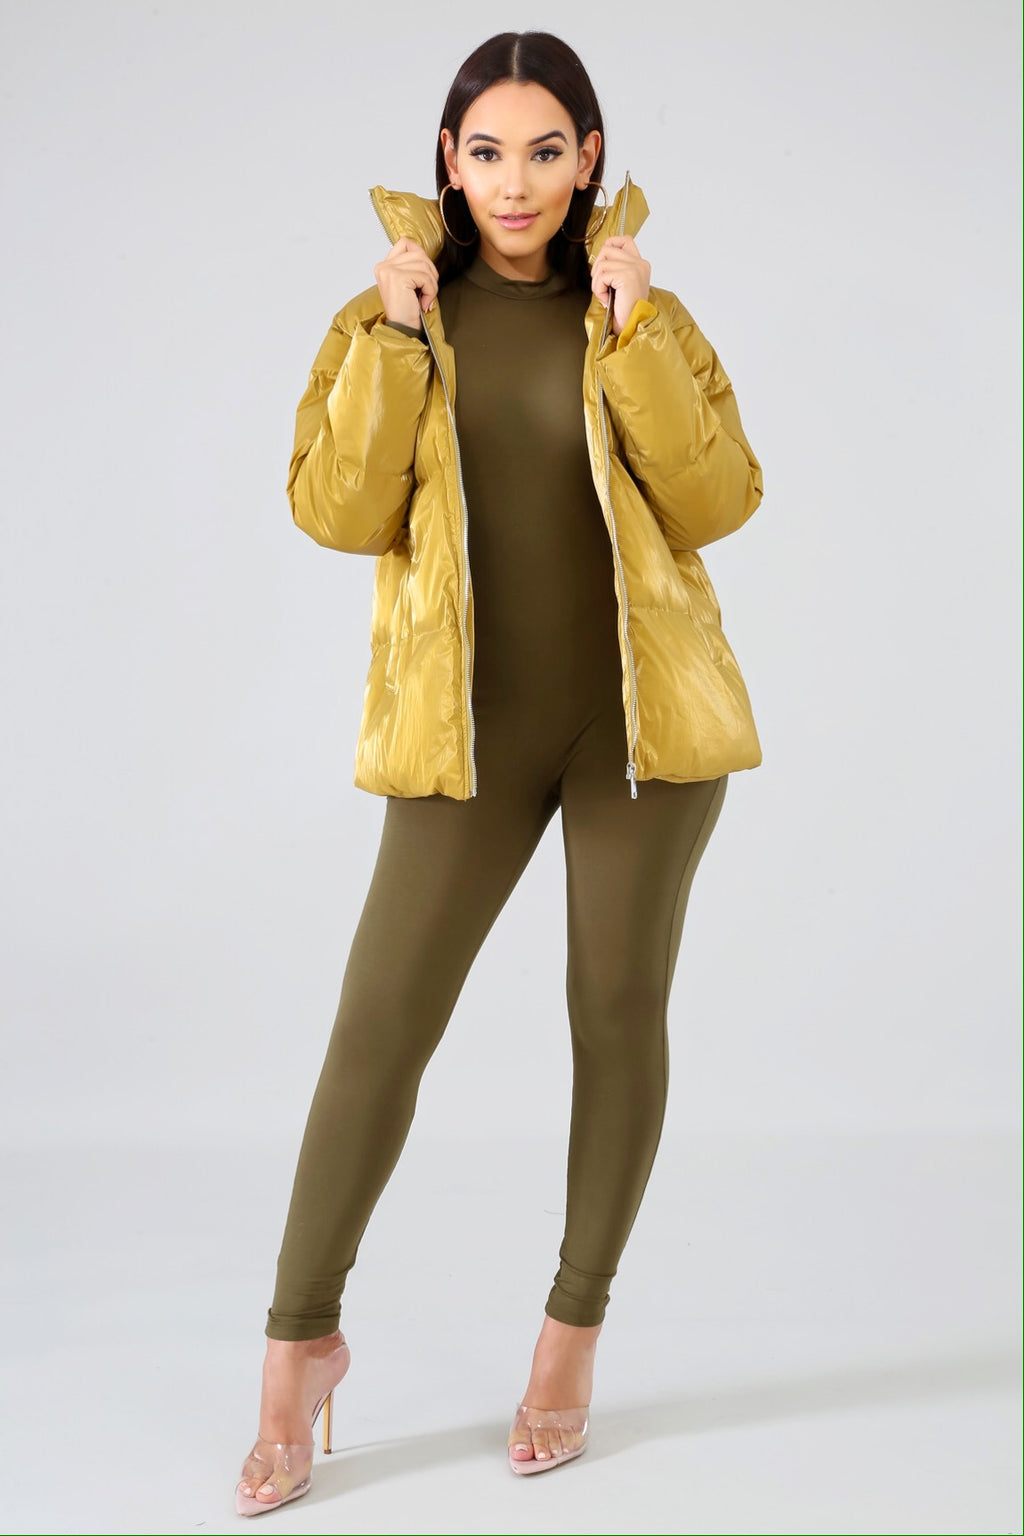 Fly Girl Yellow Bomber Jacket